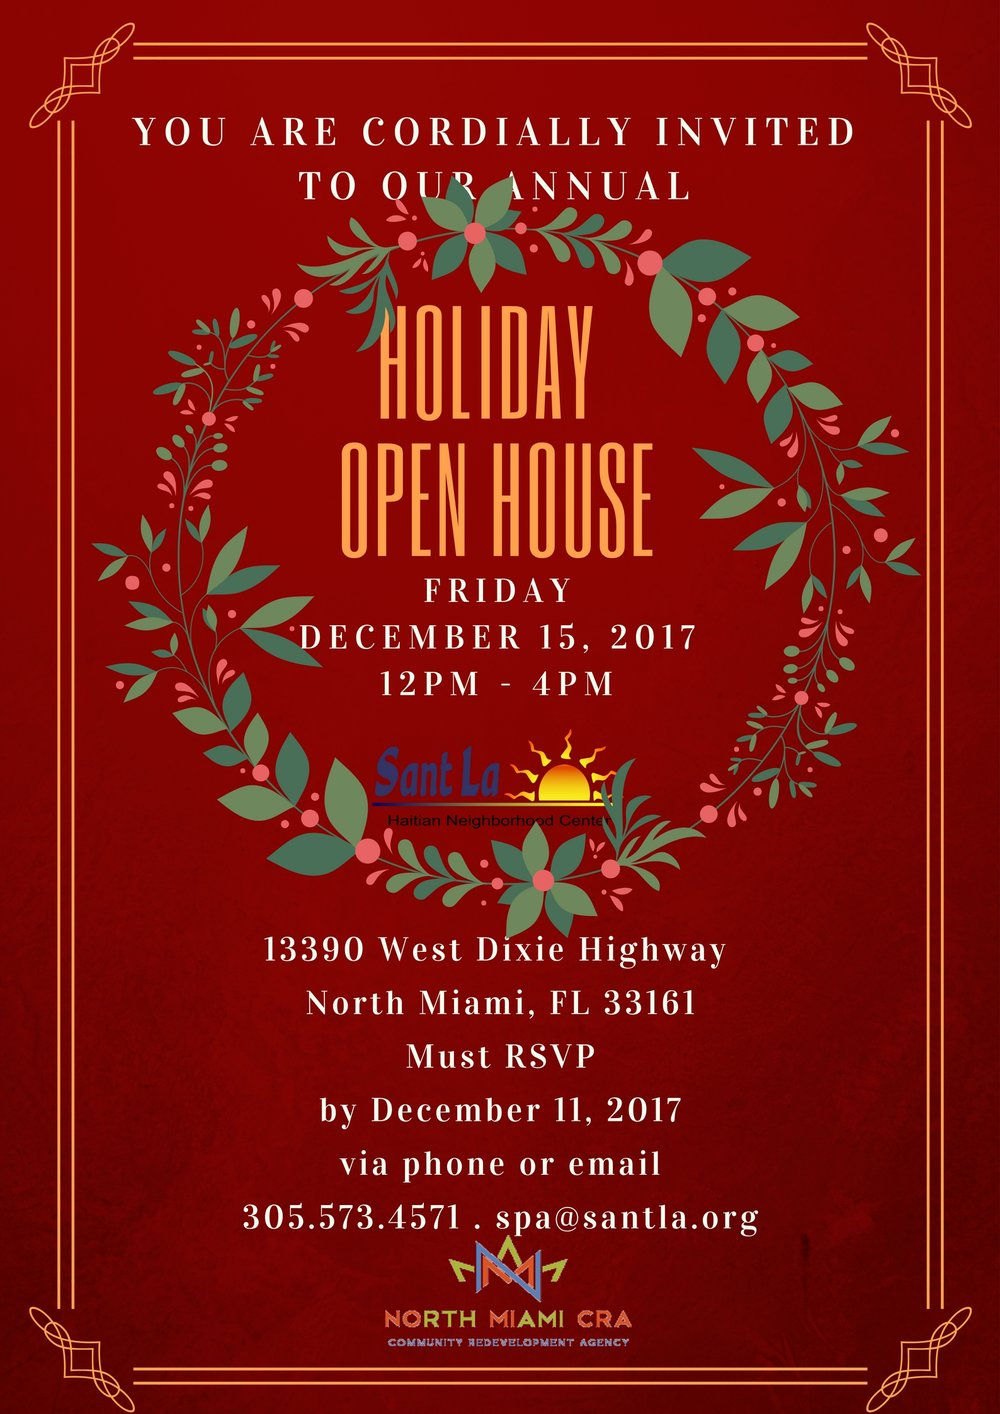 Holiday Open House flyer 2017 (3).jpg